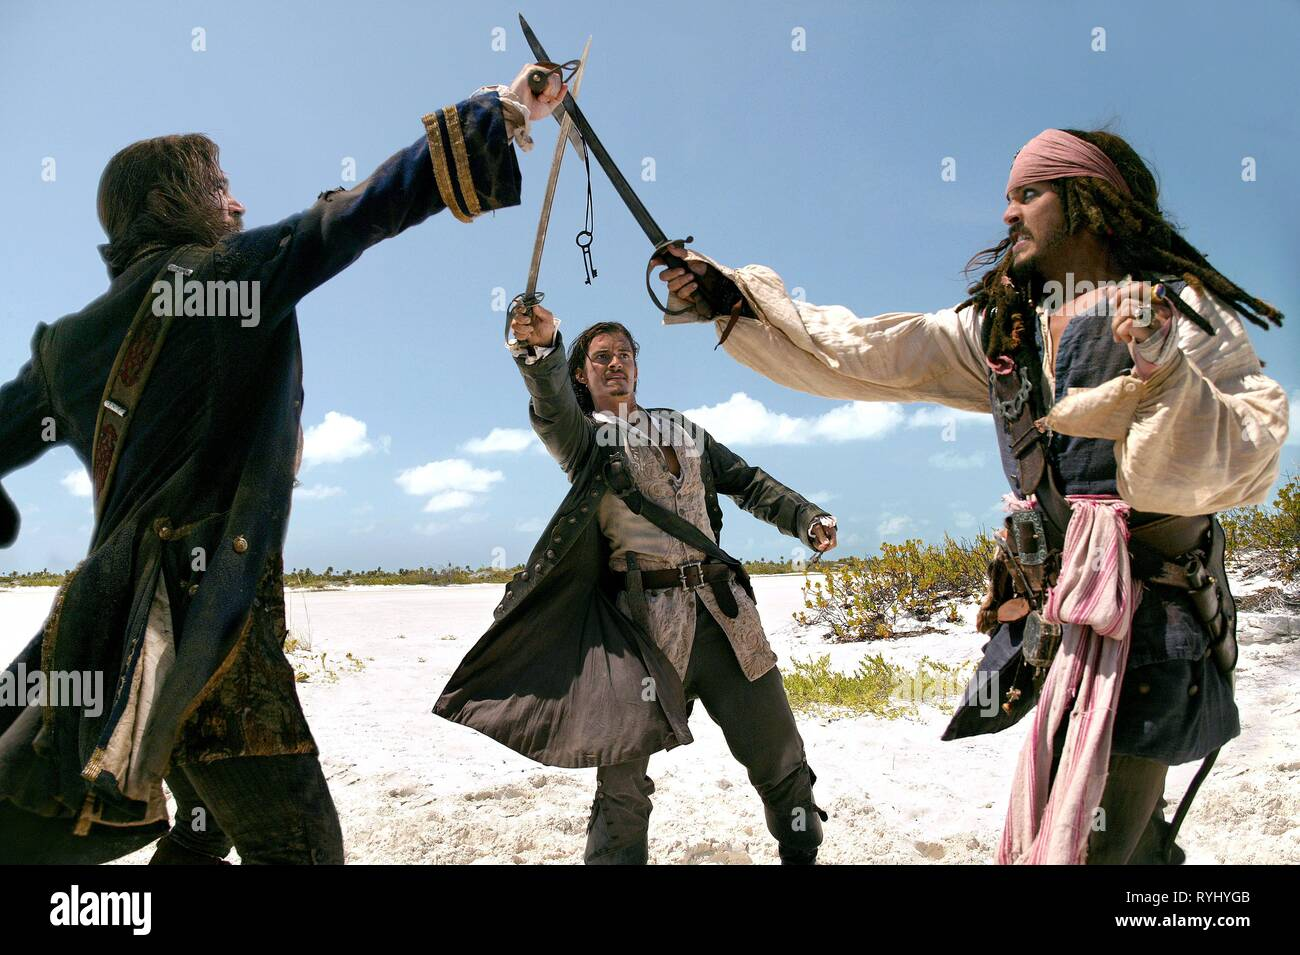 JACK DAVENPORT, ORLANDO BLOOM, JOHNNY DEPP, PIRATES OF THE CARIBBEAN: DEAD MAN'S CHEST, 2006 - Stock Image